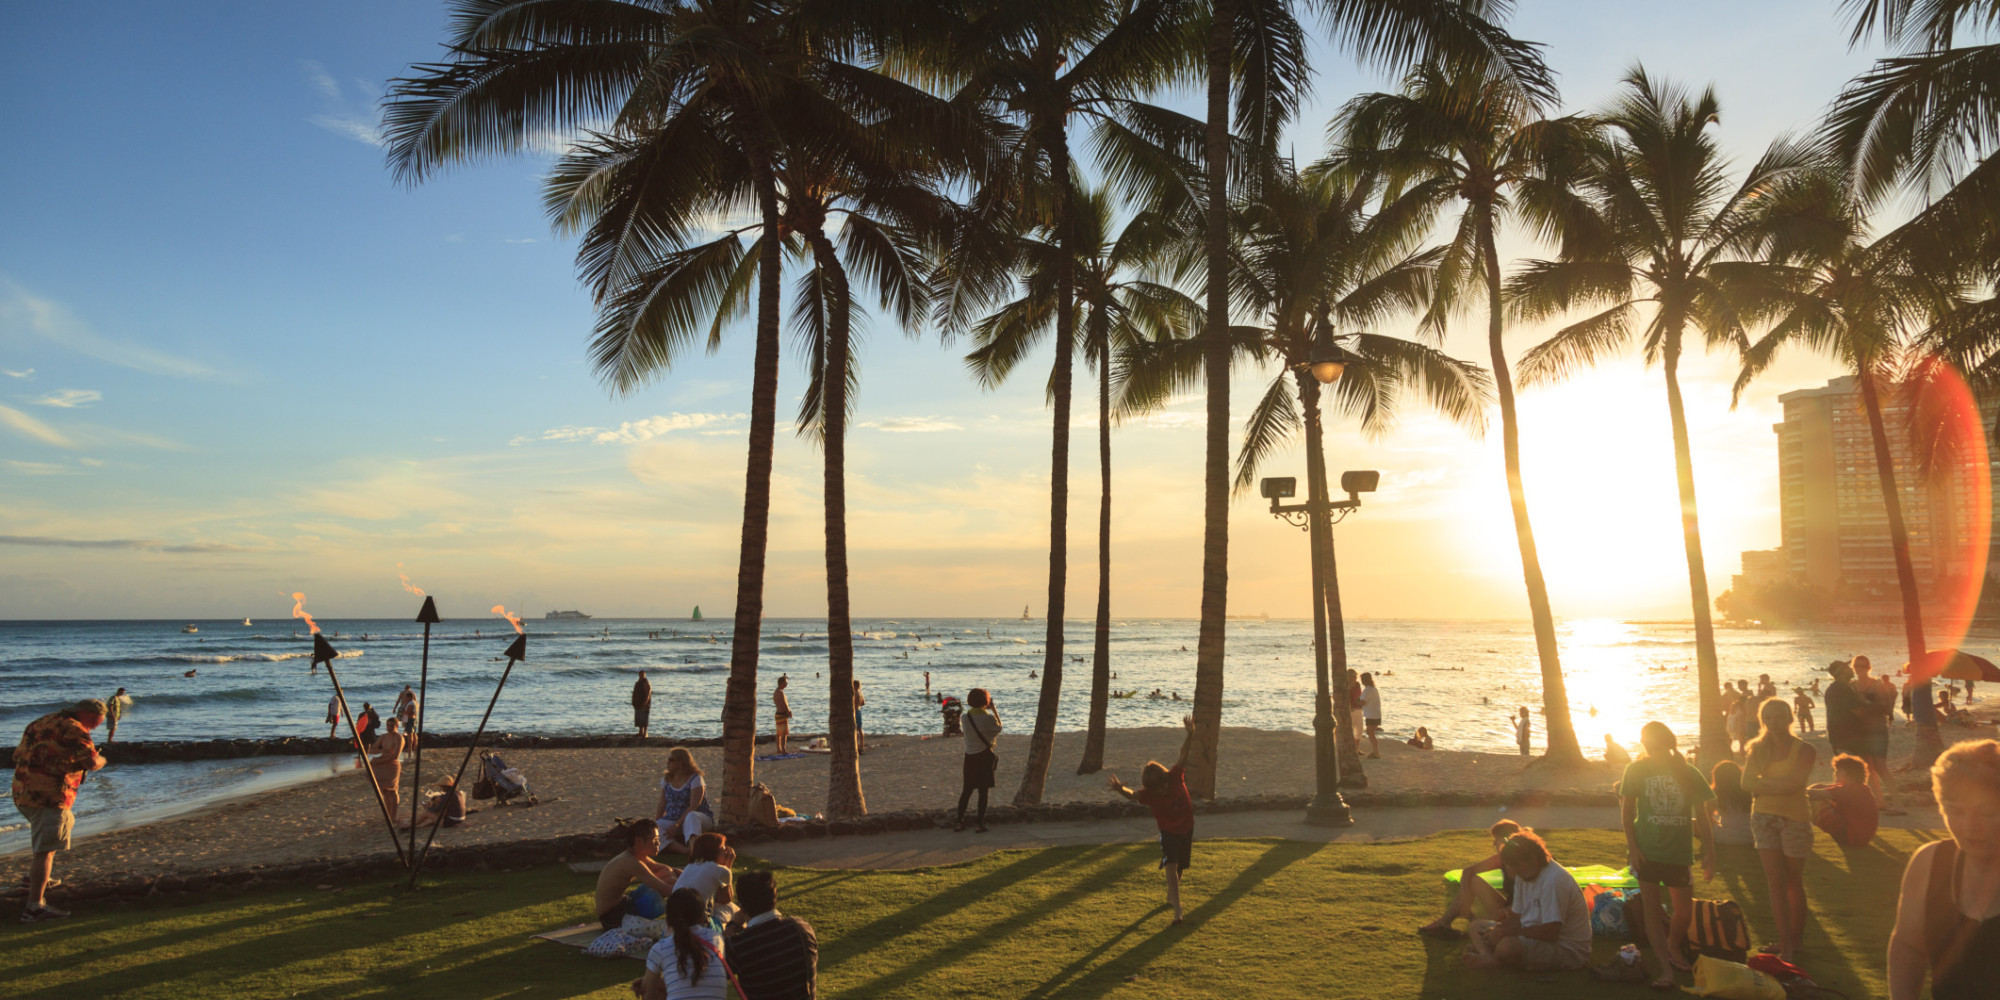 waikiki latino personals Craigslist provides local classifieds and forums for jobs, housing, for sale, personals, services, local community, and events.